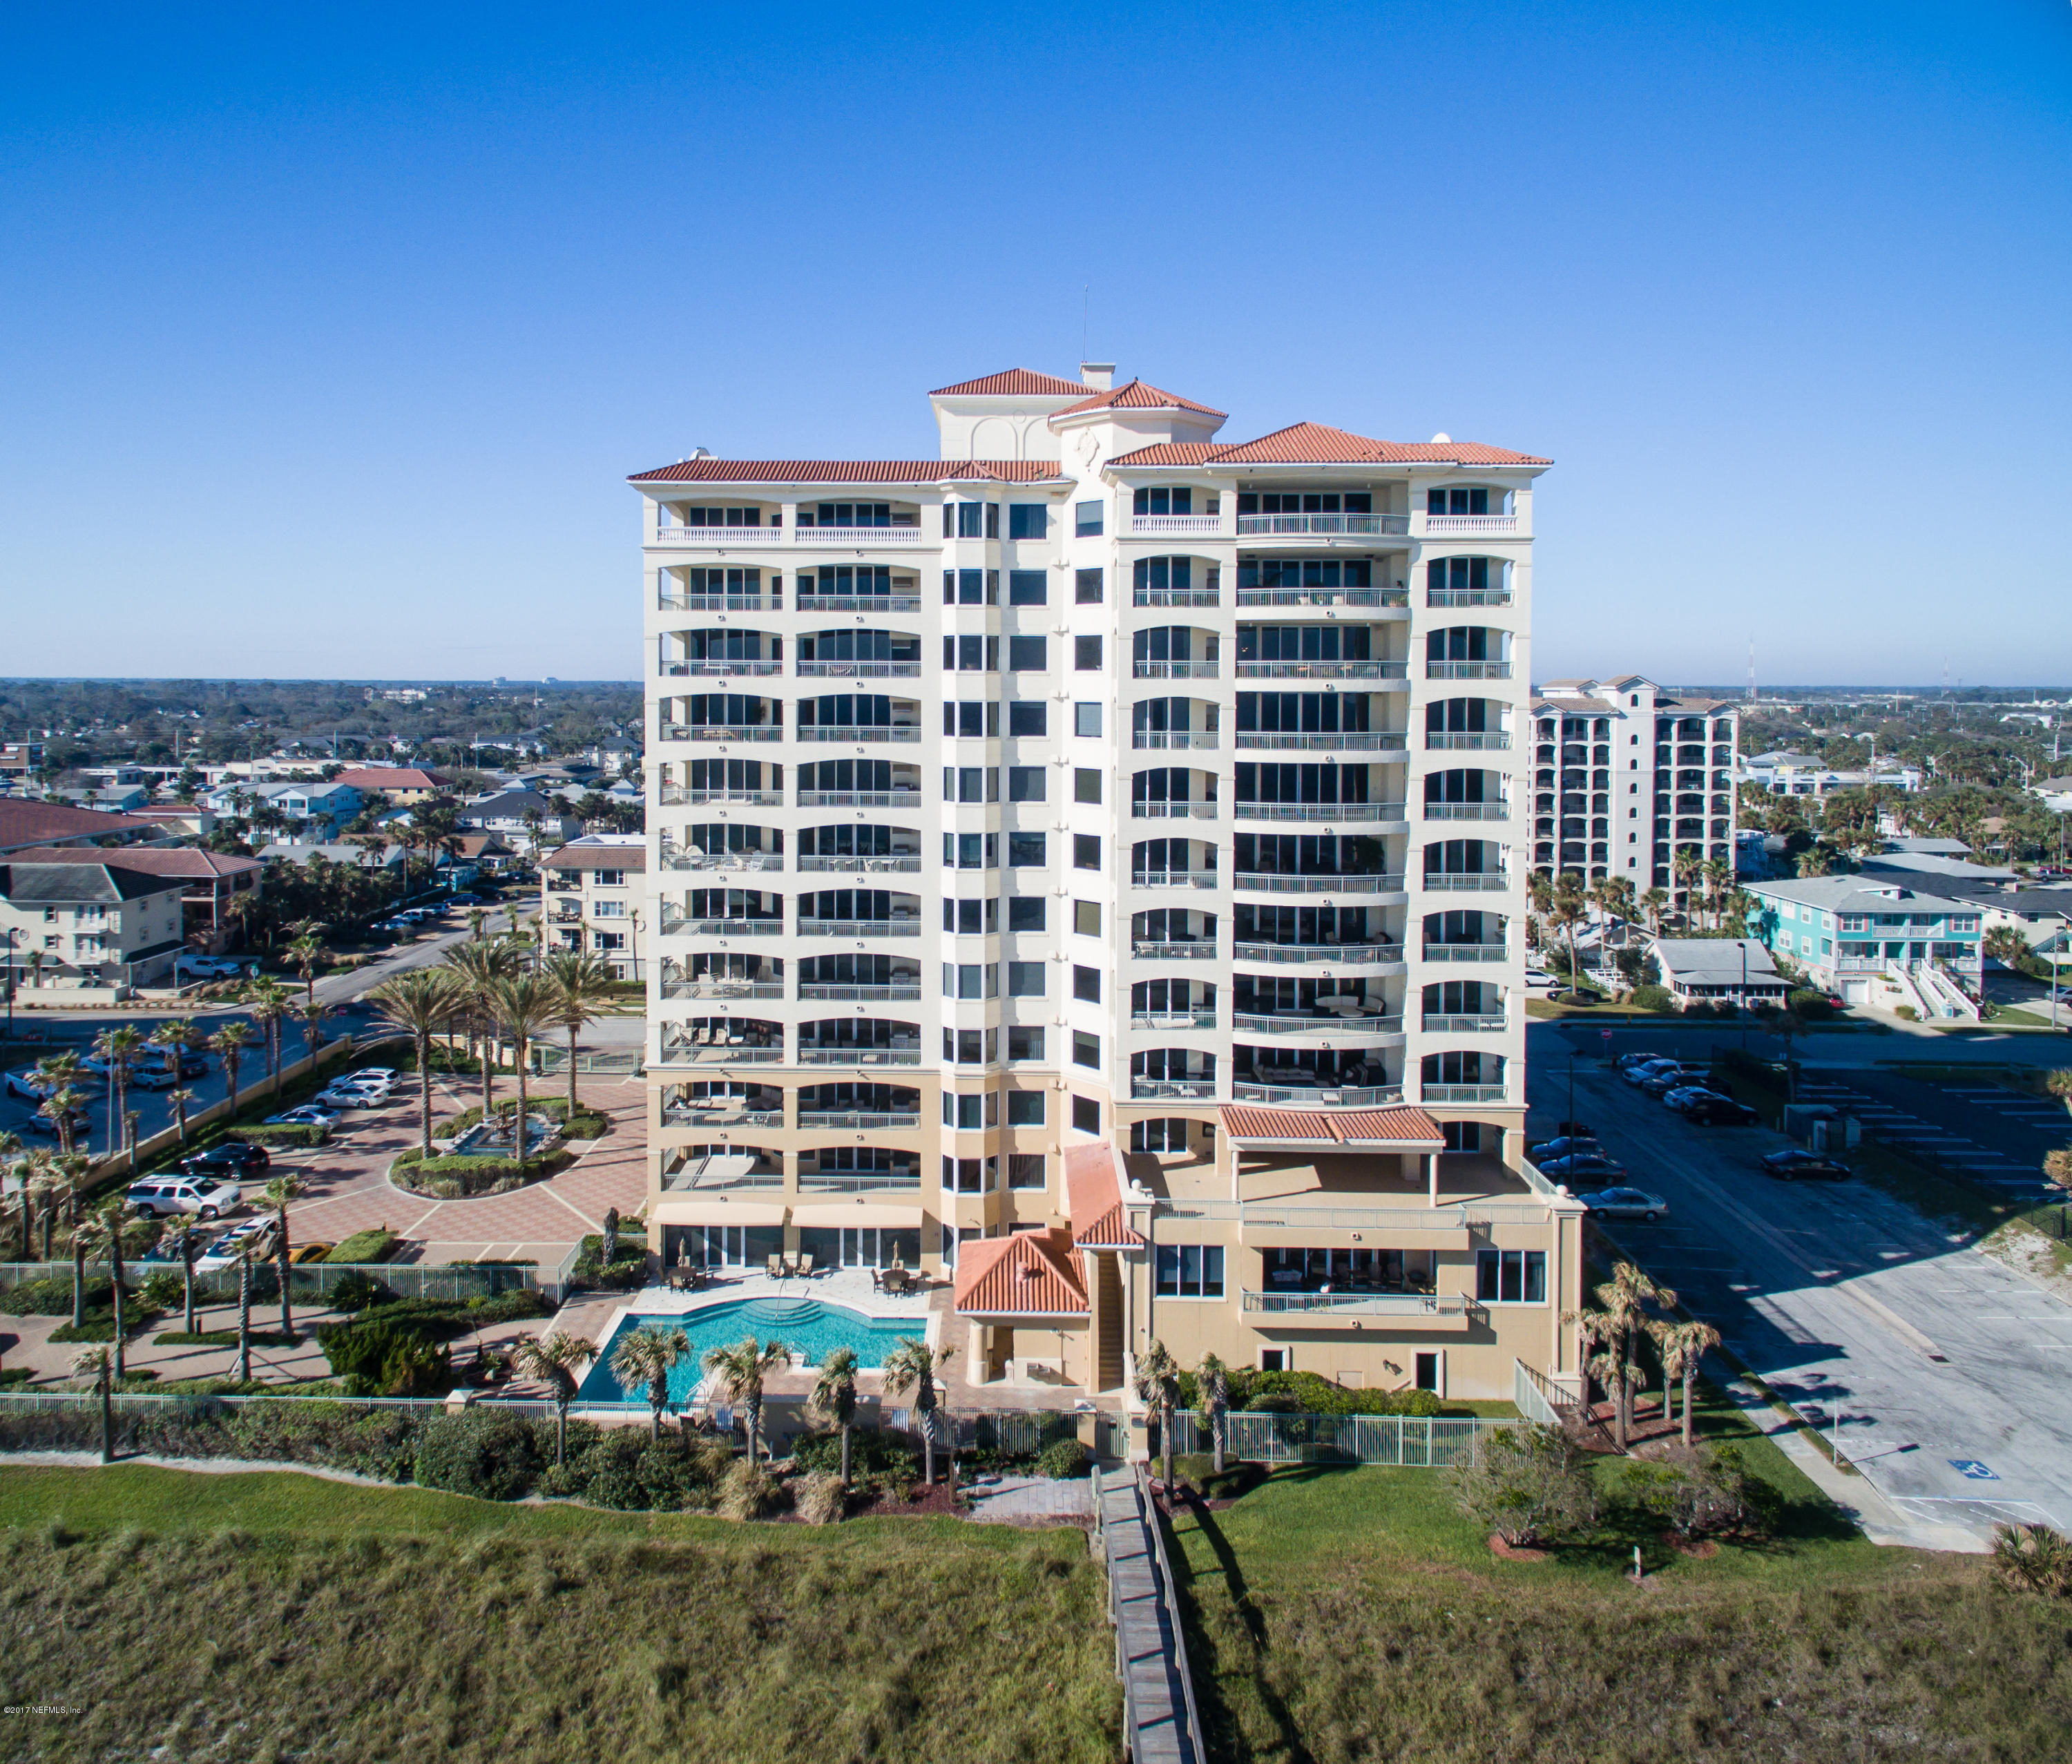 917 1ST, JACKSONVILLE BEACH, FLORIDA 32250, 3 Bedrooms Bedrooms, ,3 BathroomsBathrooms,Residential - condos/townhomes,For sale,1ST,911278